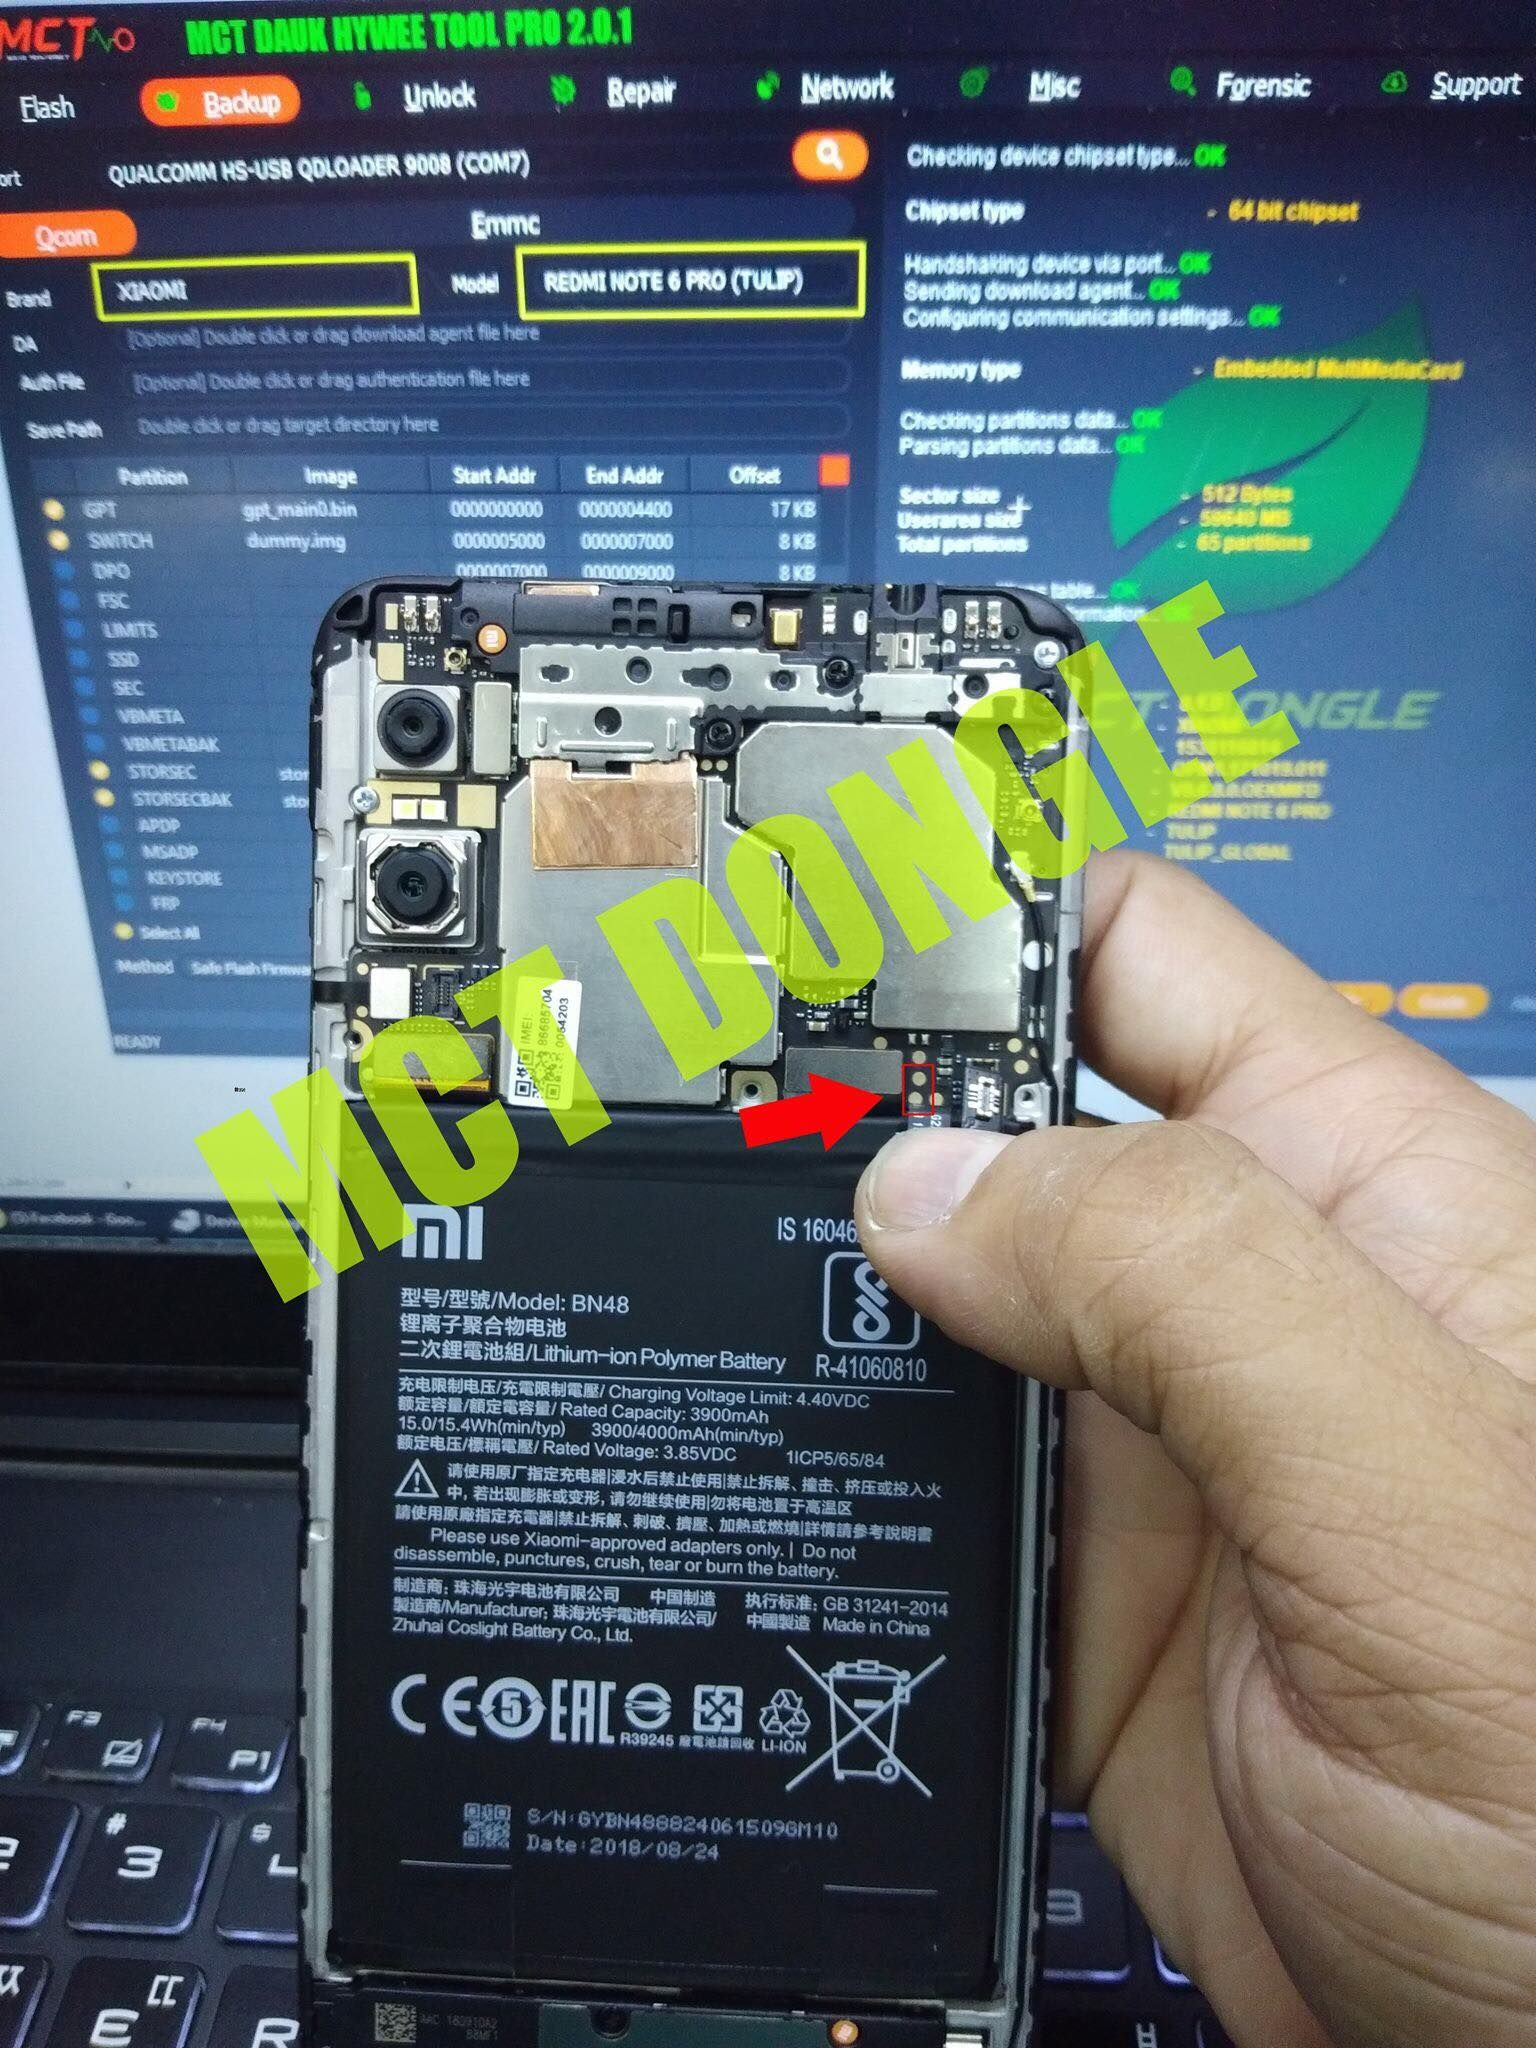 This Step Is On How To Unbrick And Enter Download Mode Edl On Xiaomi Redmi Note 6 Pro Device You Ll Need To Disassemble Your Device An In 2021 Notes Pro Xiaomi